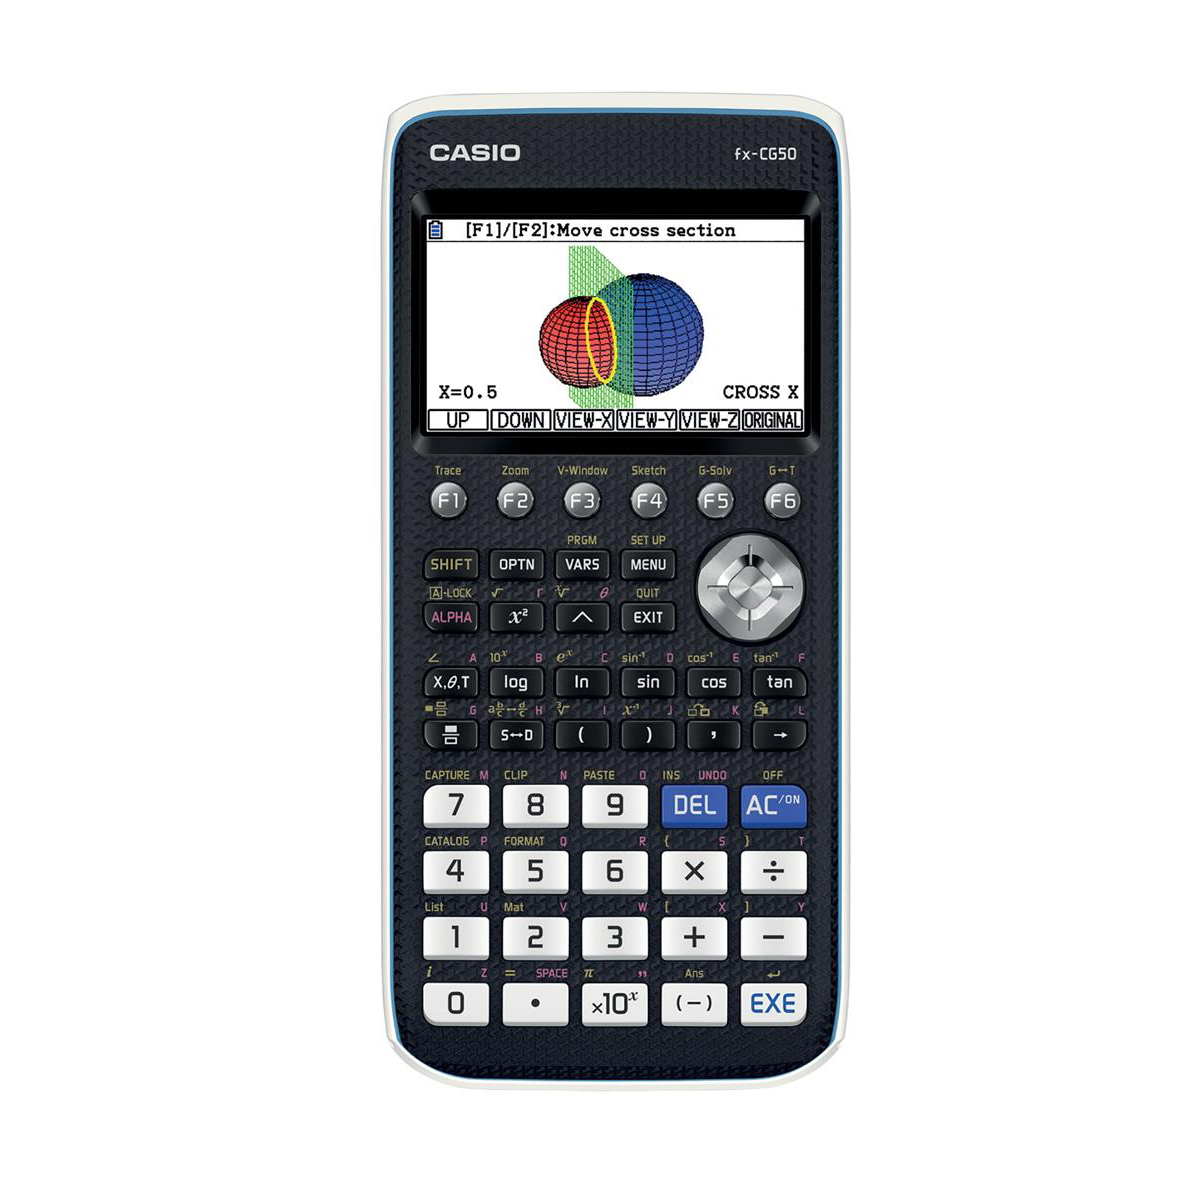 Casio Graphic Calculator Natural Textbook Display with USB 93x27x200mm Black Ref FX-CG50